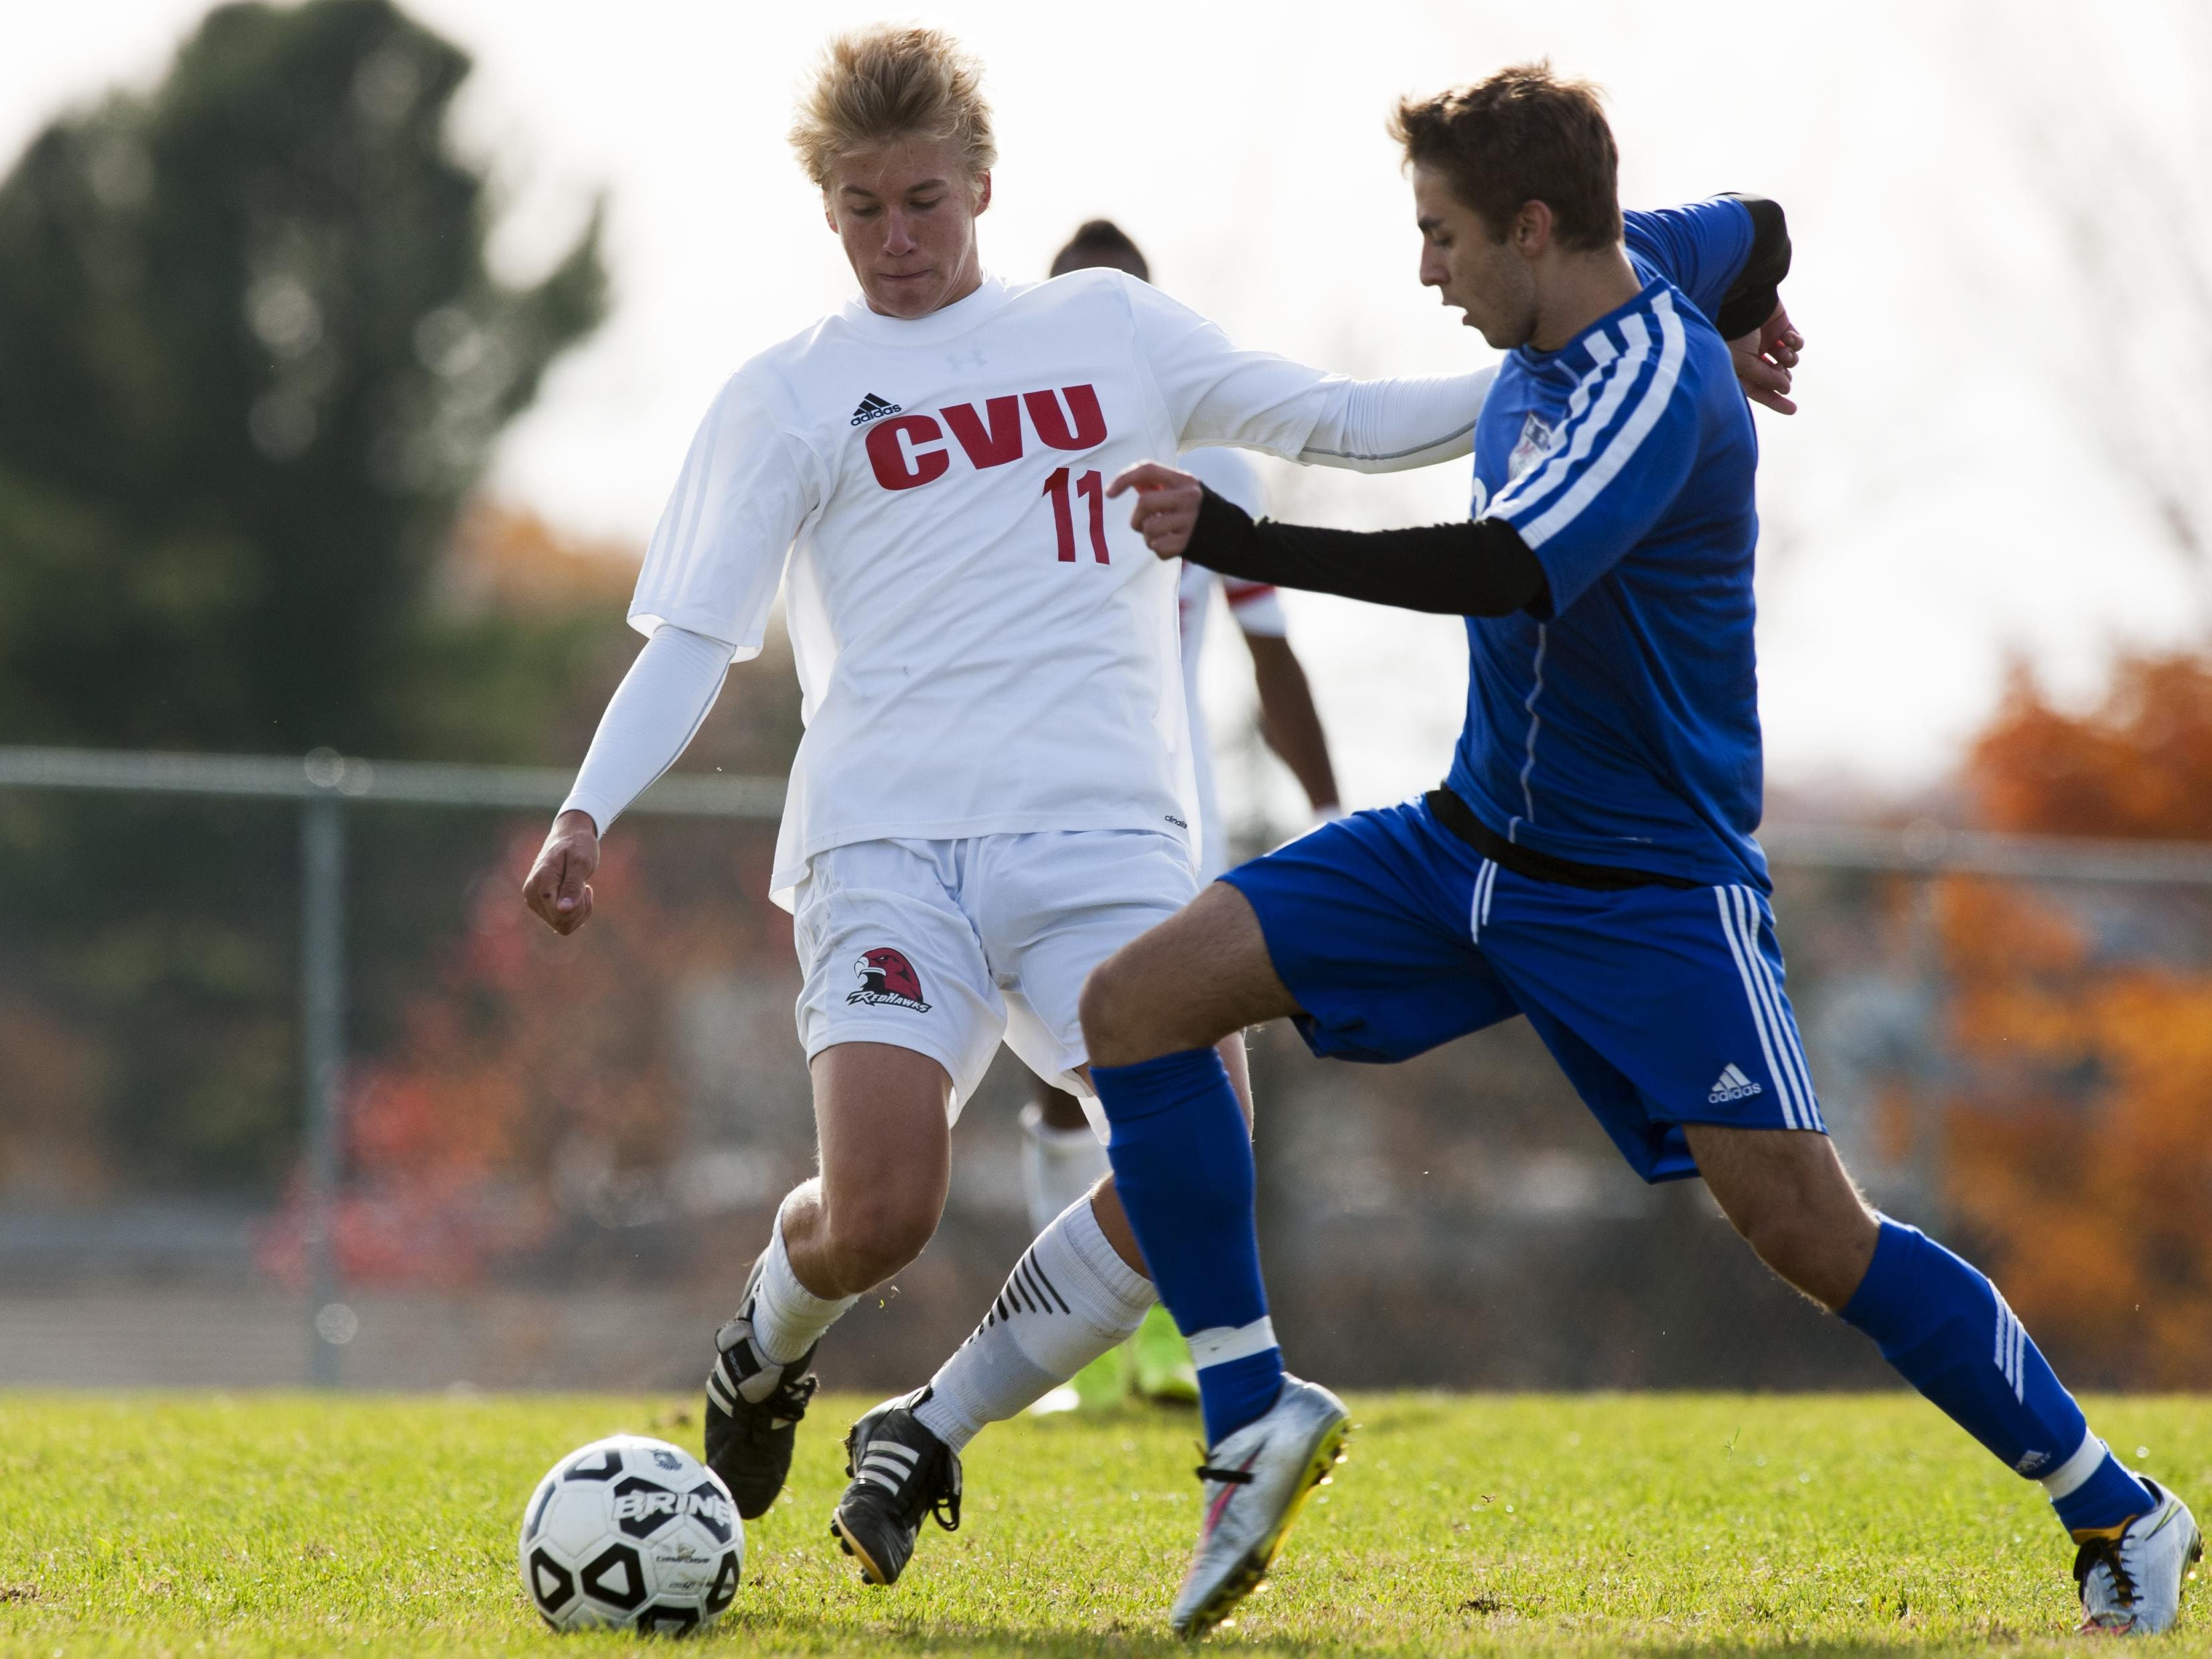 Mount Anthony's Trey Lang (8) battles for the ball with CVU's Kyler White-Hansen (11) during the Division I boys soccer semifinal game.